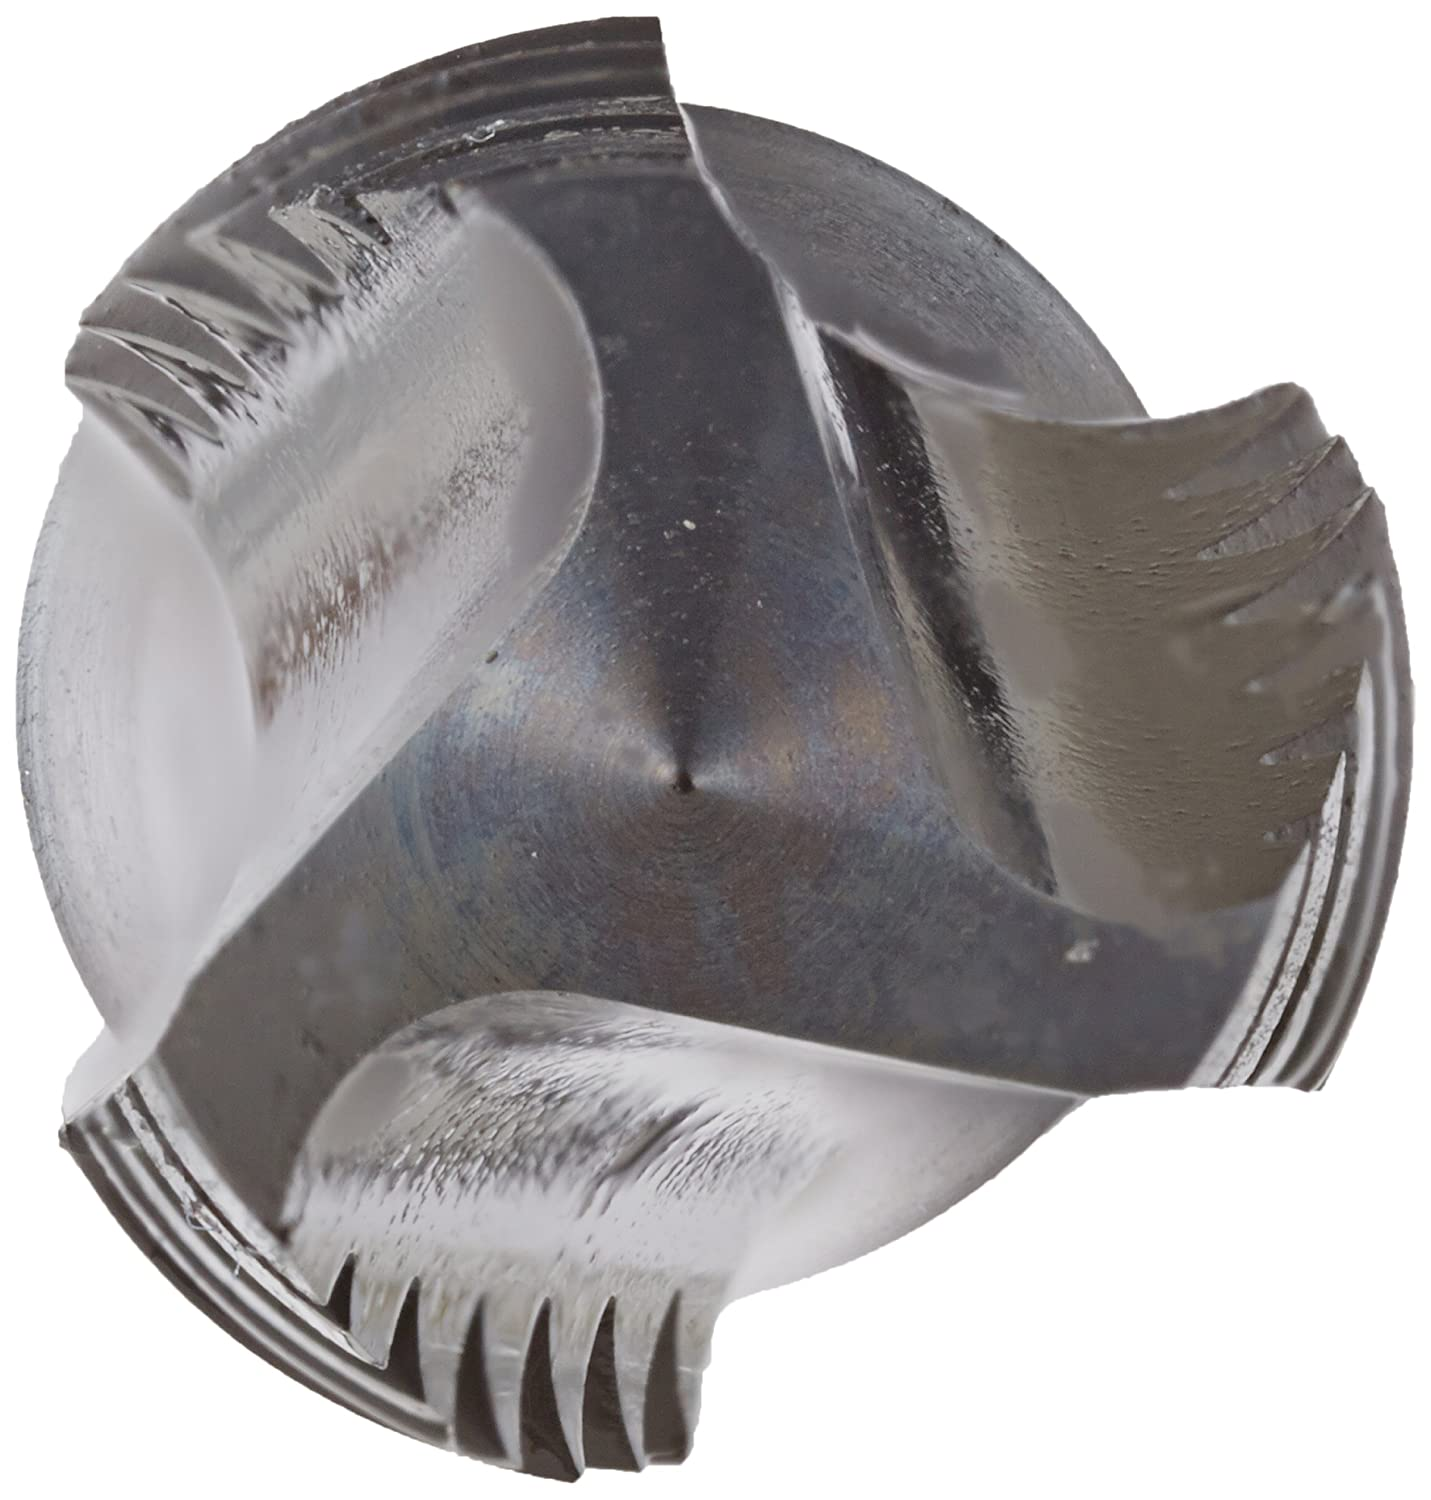 YG-1 I0 Series Vanadium Alloy HSS Spiral Pointed Tap H3 Tolerance 5//16-18 Thread Size Round Shank with Square End Steam Oxide Plug Chamfer